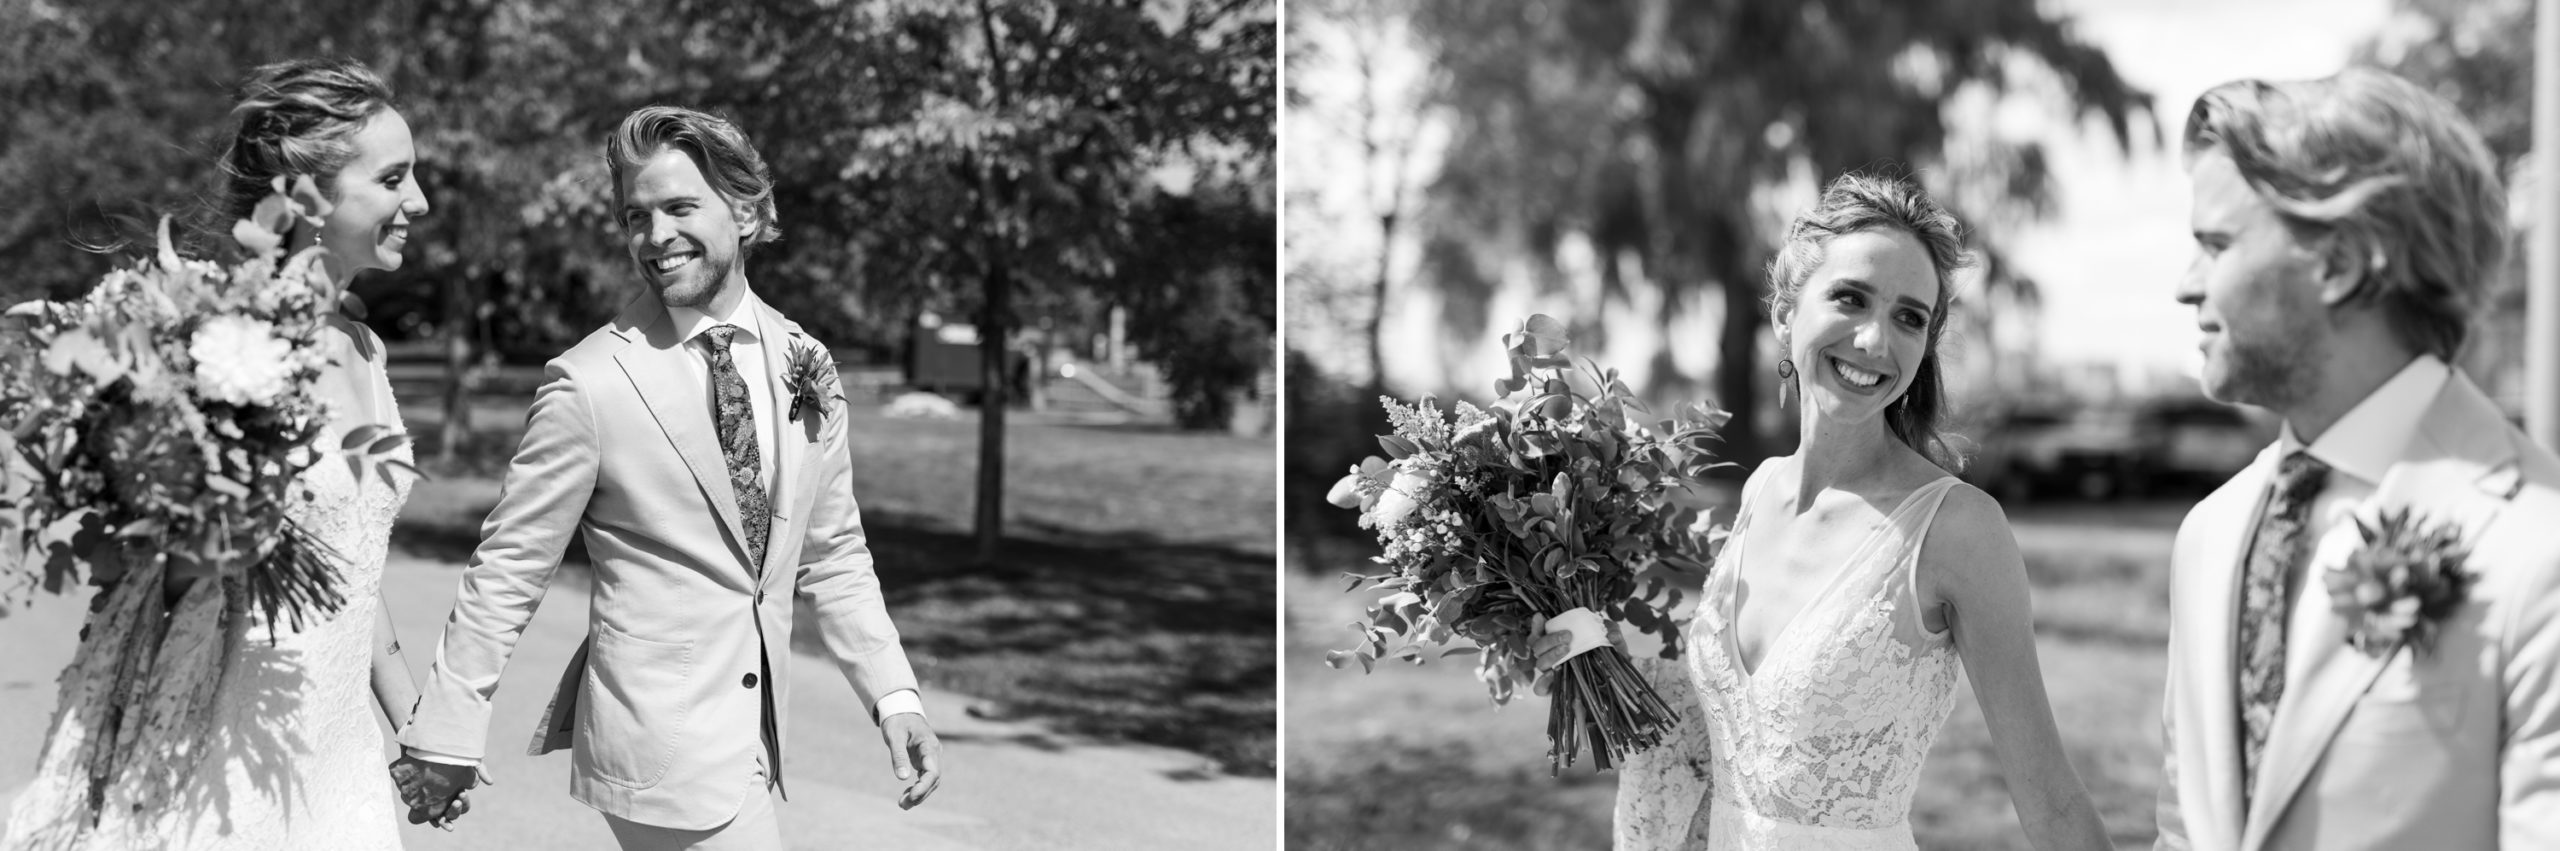 Bride Groom Walk Toronto Ward's Island Summer Wedding Zsuzsi Pal Photography